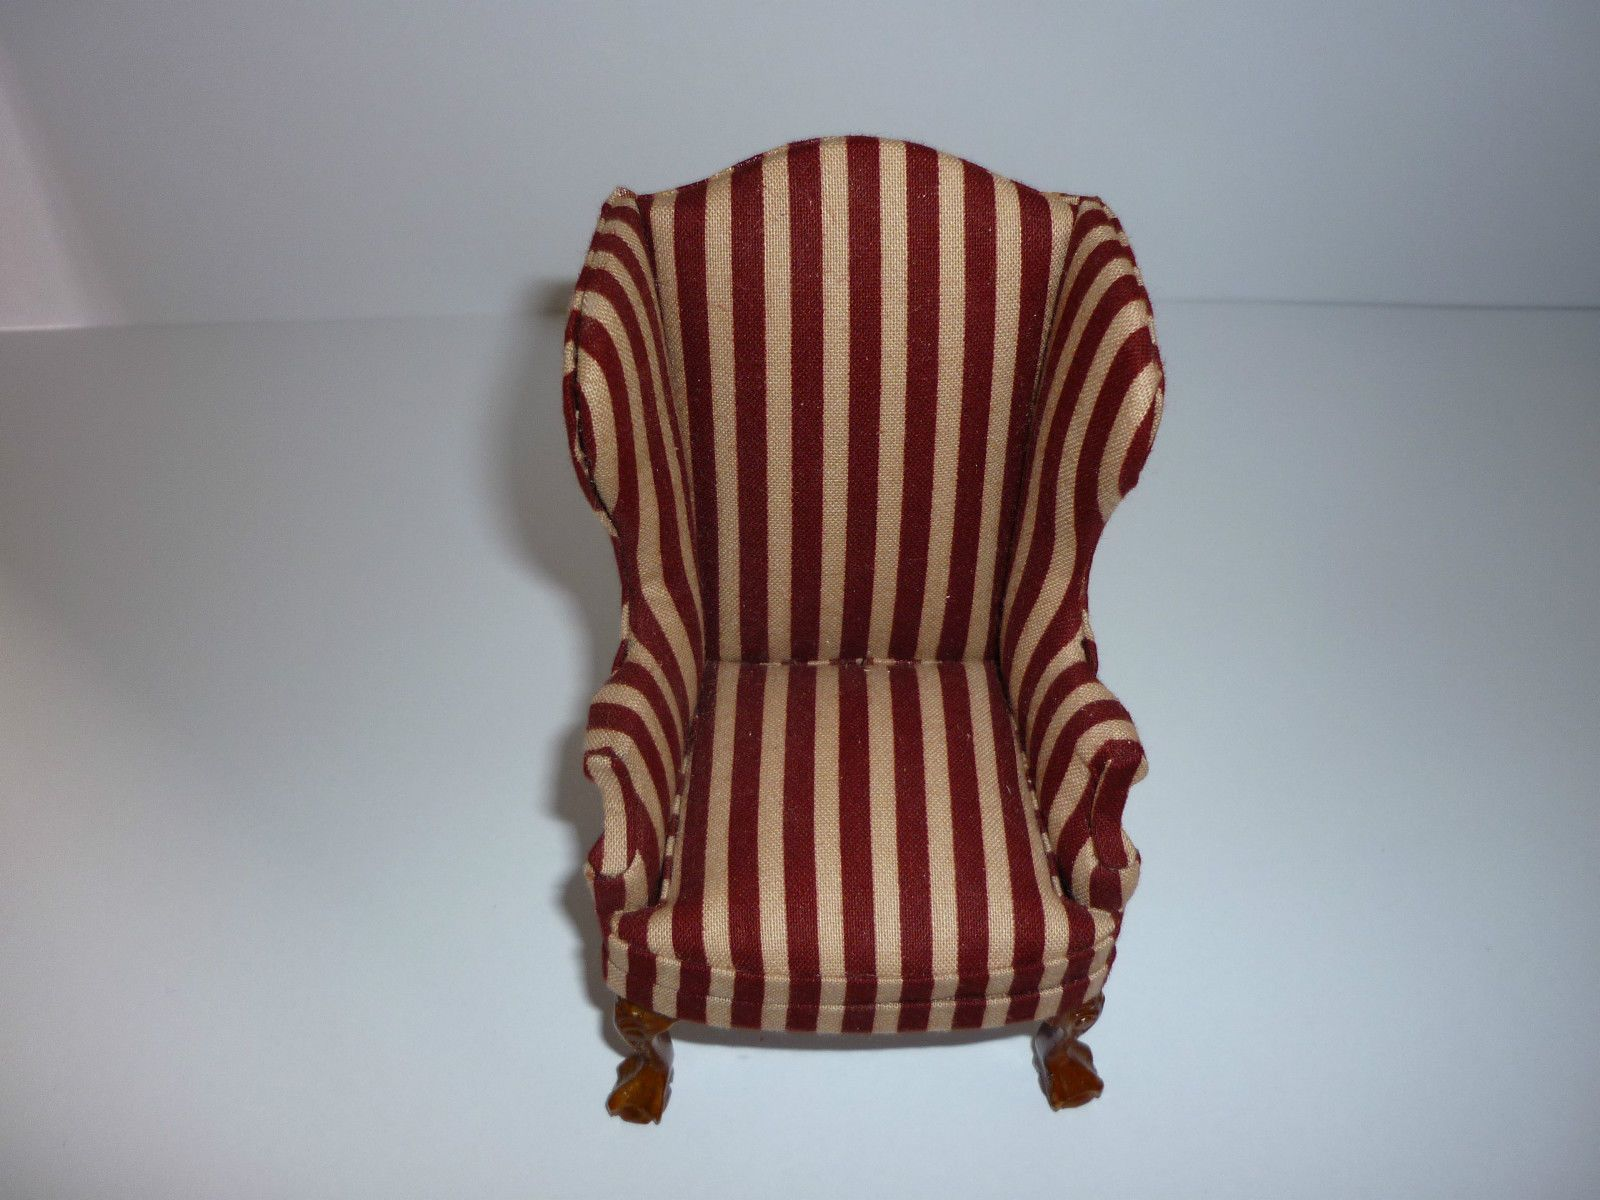 JIA YI DOLLS HOUSE RED STRIPED WINGED CHAIR 12TH SCALE NEW   EBay